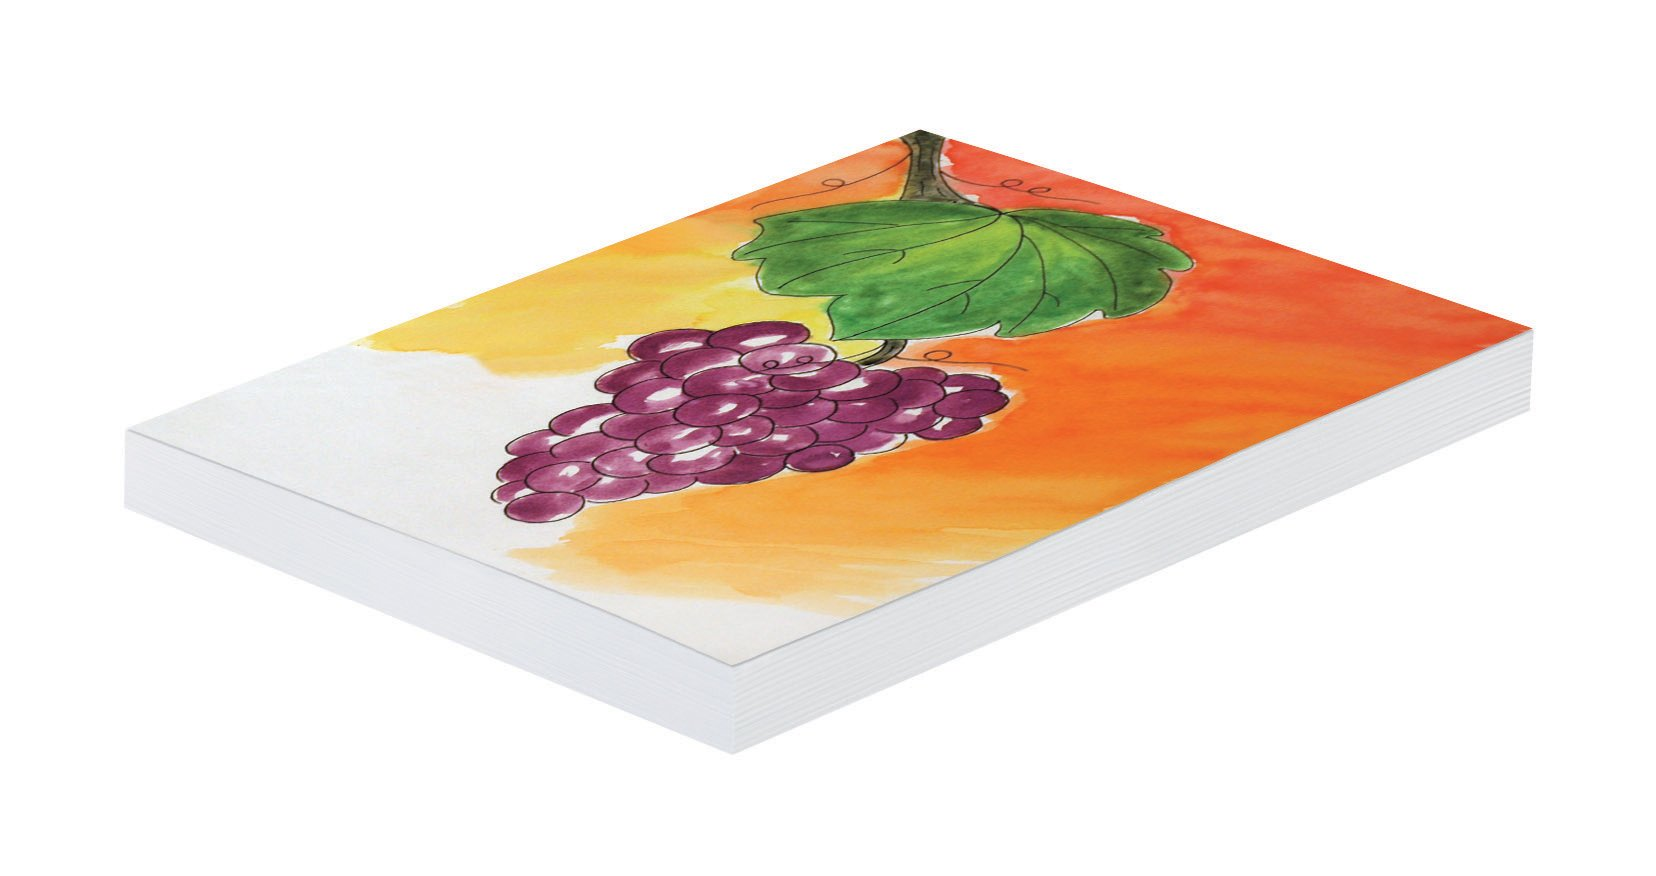 Pacon Art1st Mixed Media Art Paper, White, 24'' by 36'', 250 Sheets (4837)